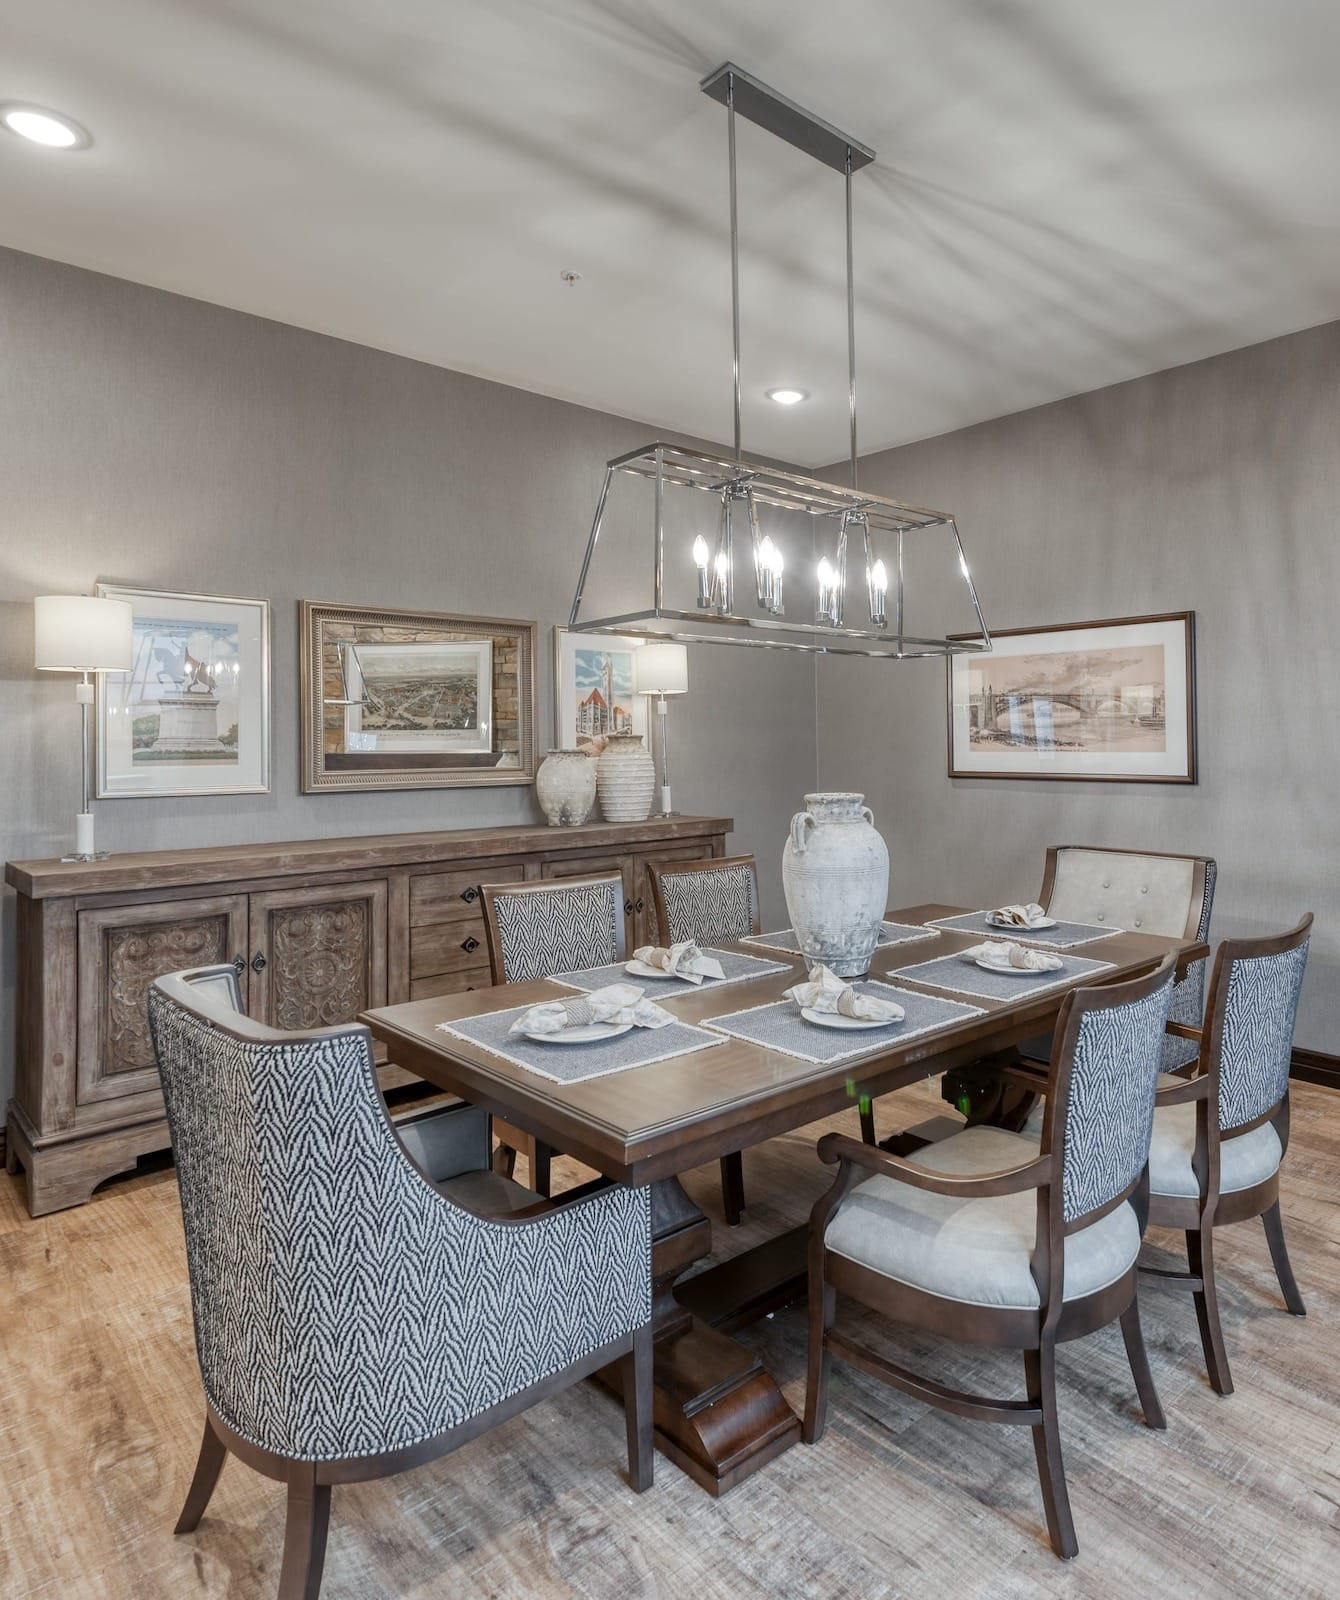 New dining room with modern light fixture